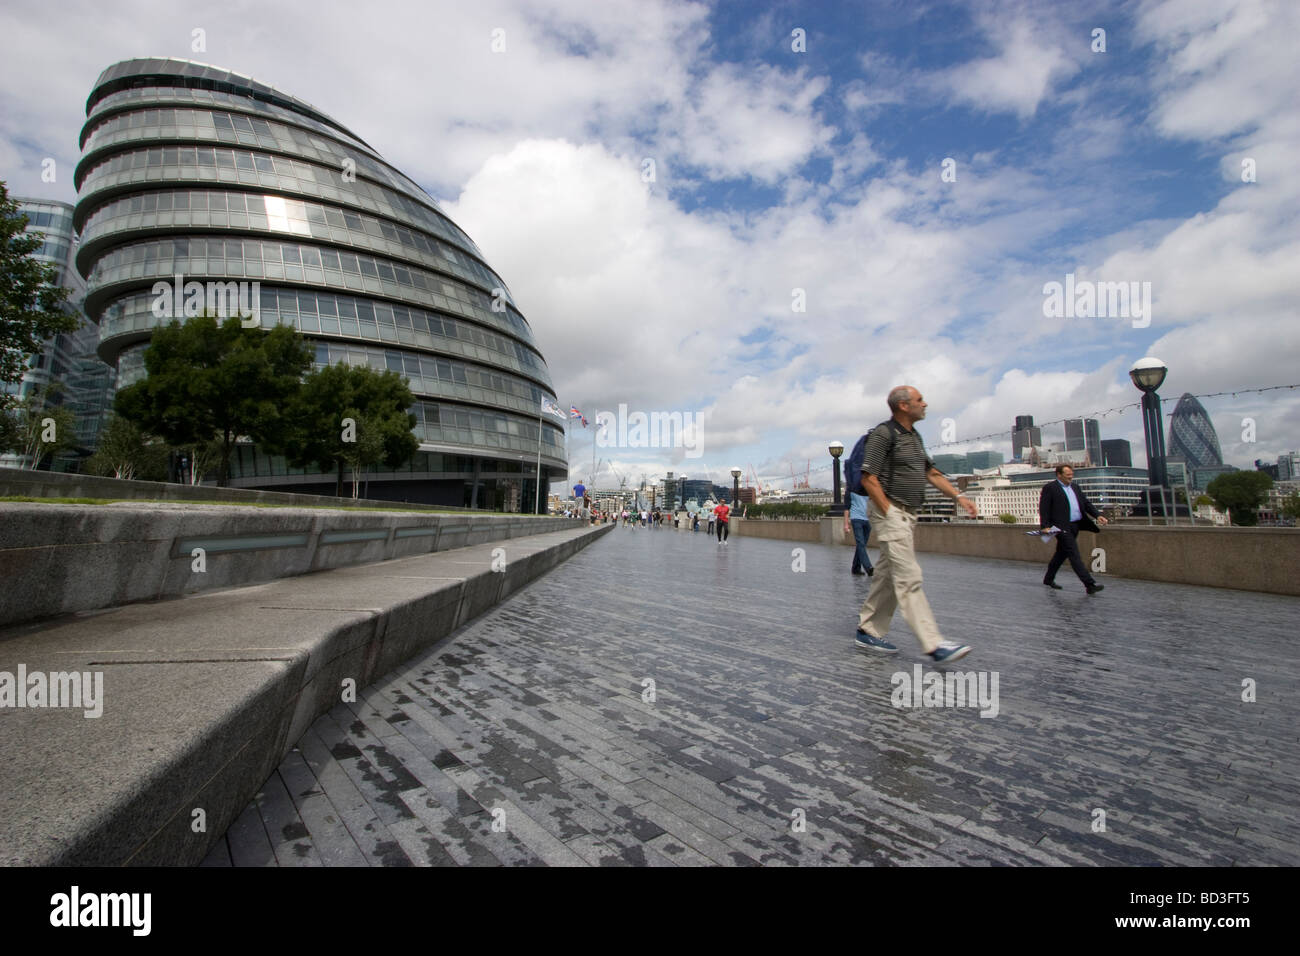 City Hall is the headquarters of the Greater London Authority which comprises the Mayor of London and London Assembly - Stock Image